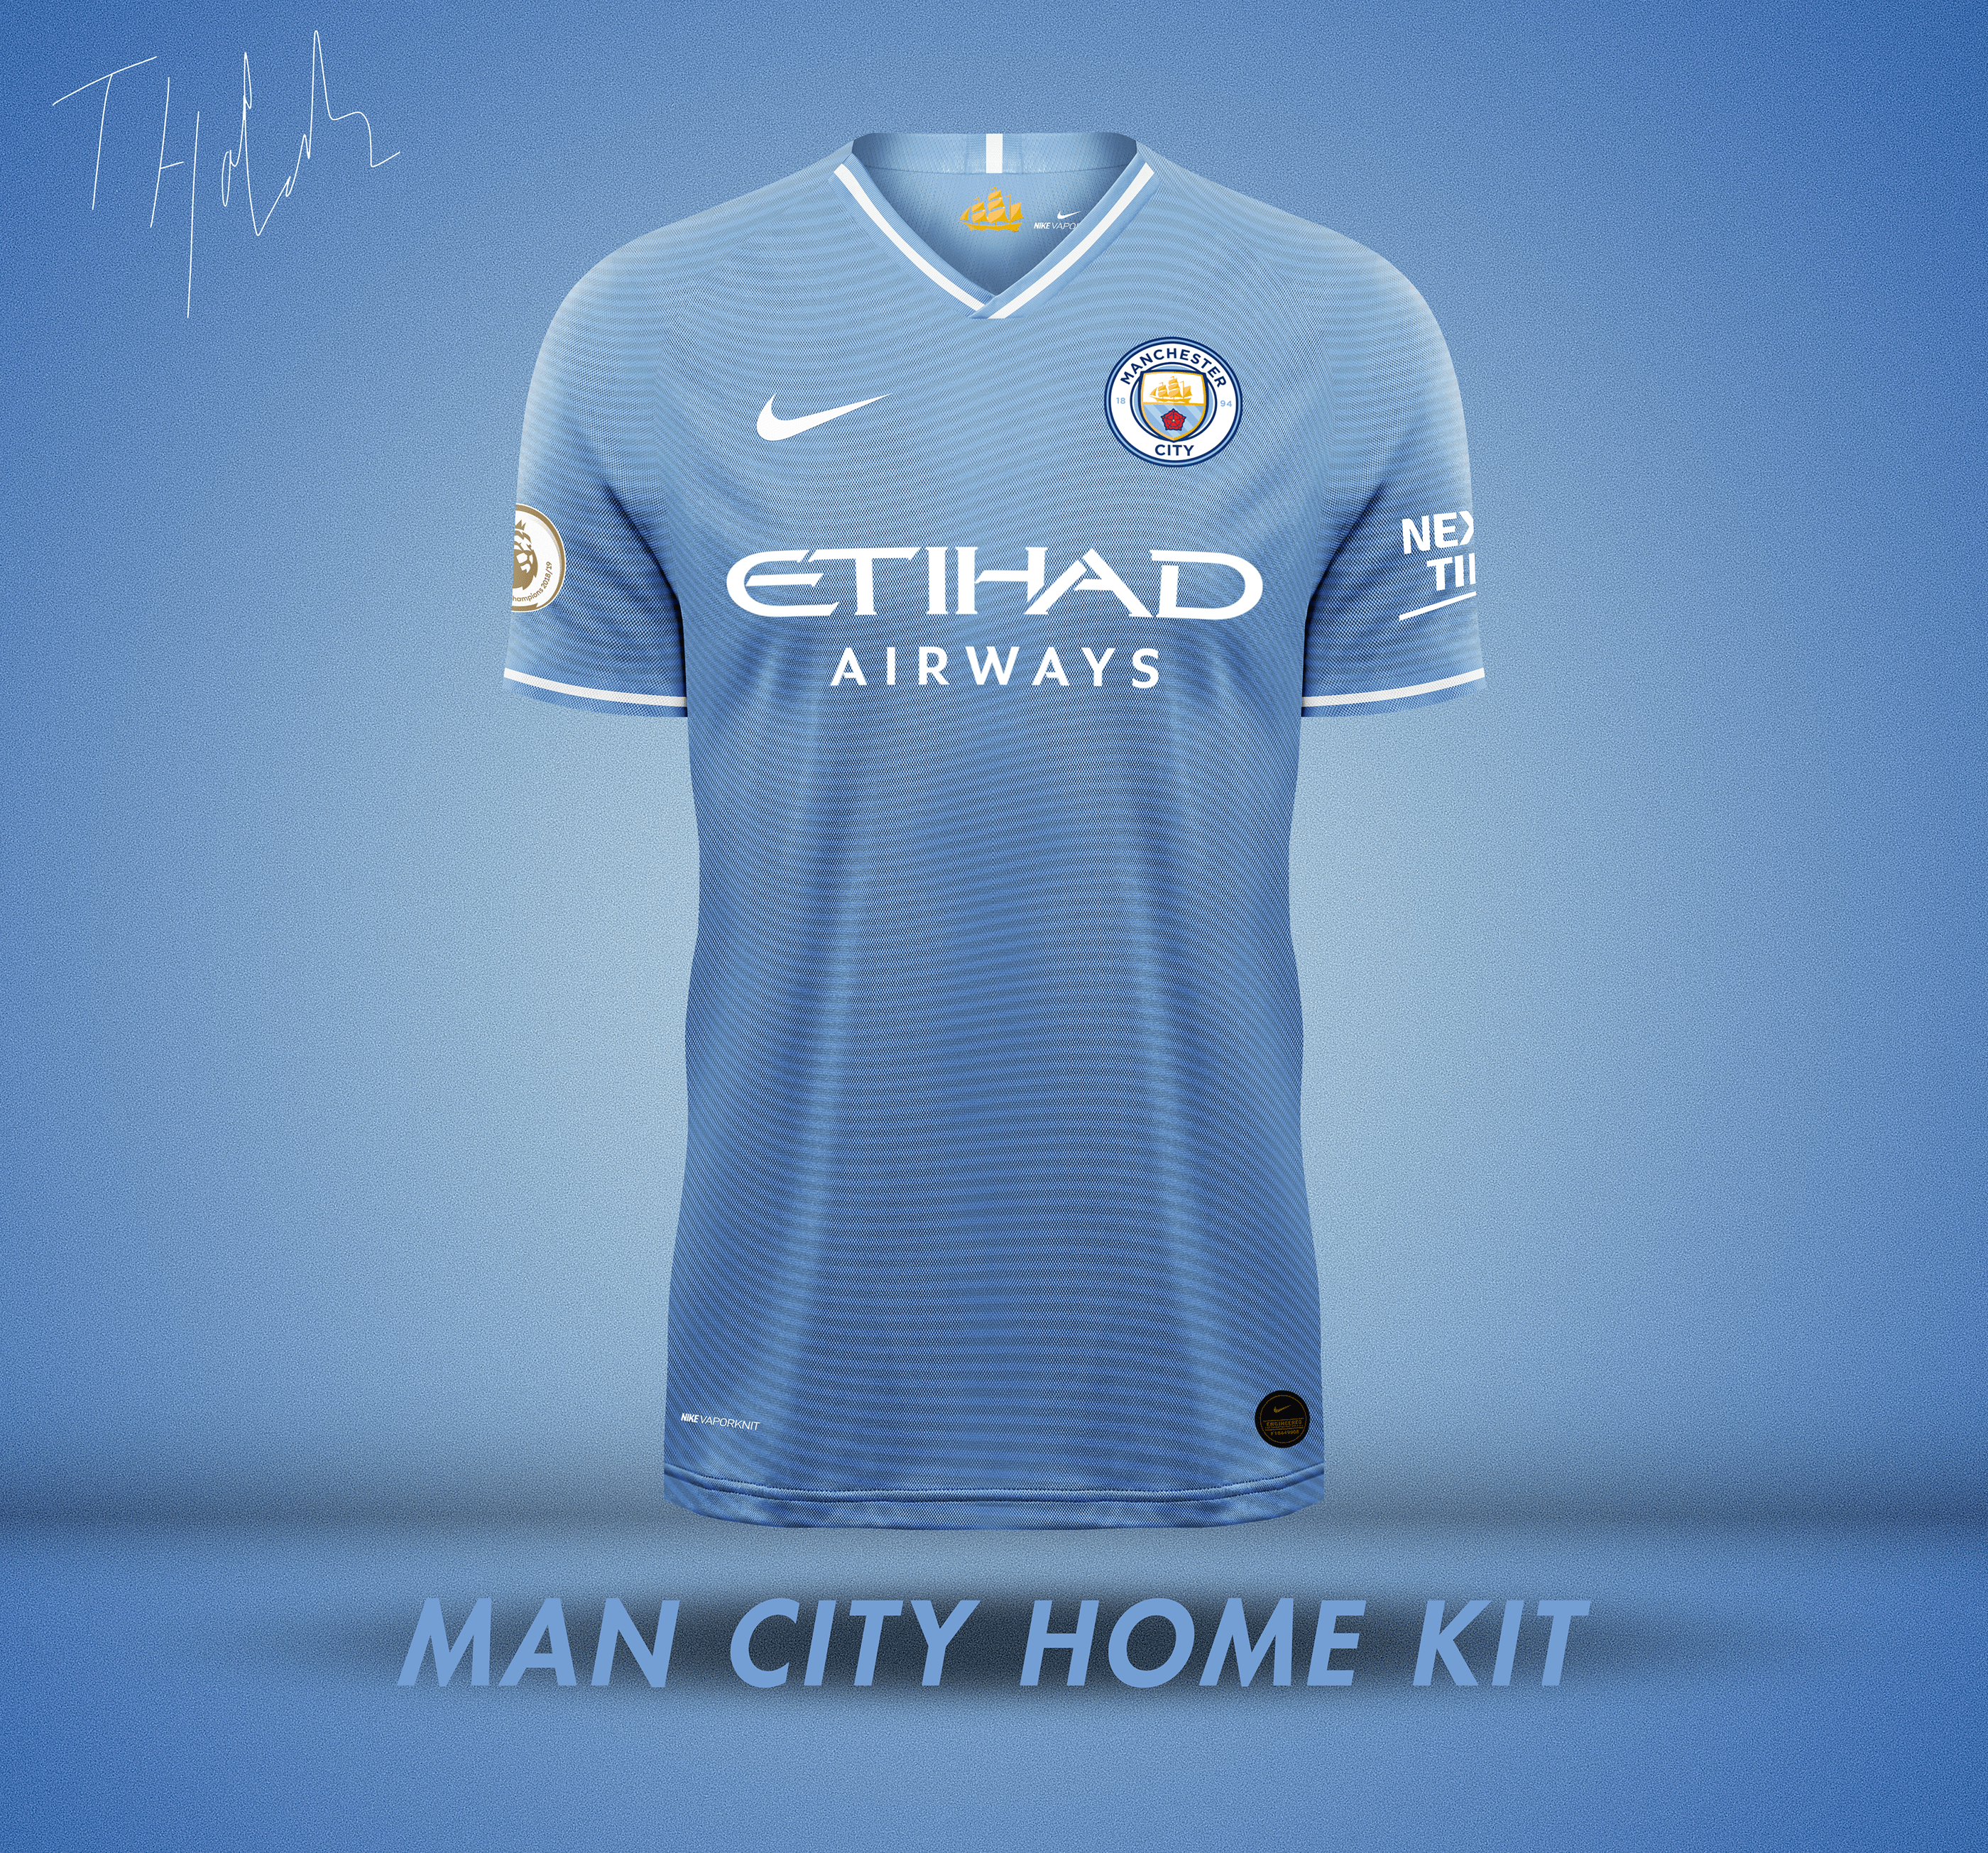 Nike X Man City Kit Concept On Behance